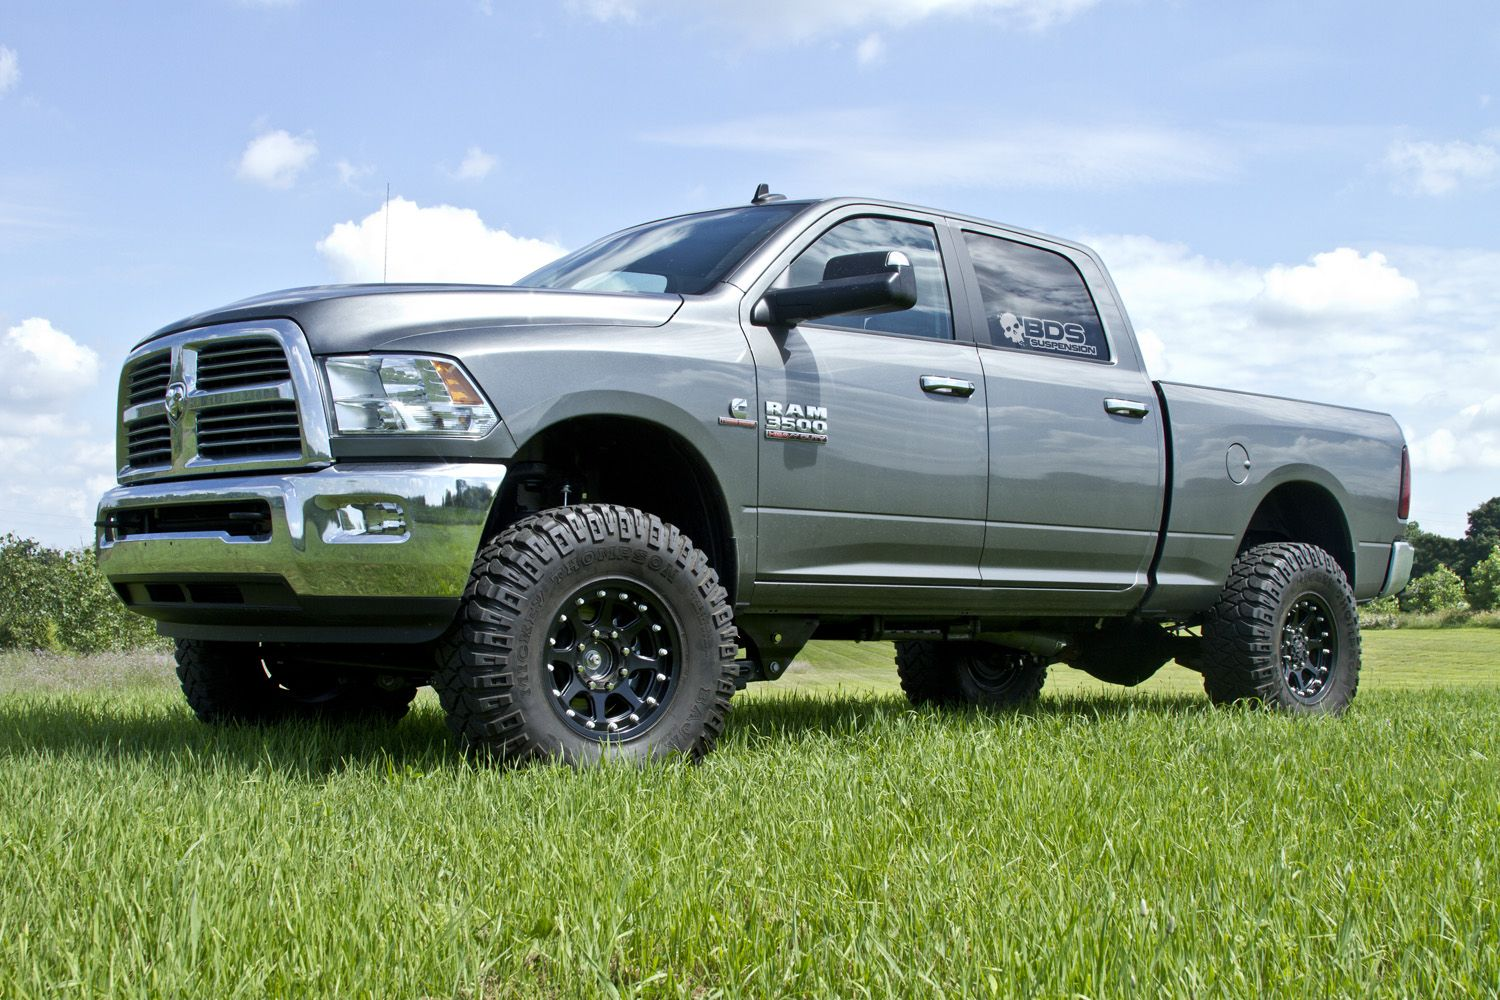 Bds npr151 2013 dodge ram 3500 4 lift kit sporttruckusainc com 1500 1000 search by image dodge ram 3500 w 4 lift and 37 tires pinterest dodge